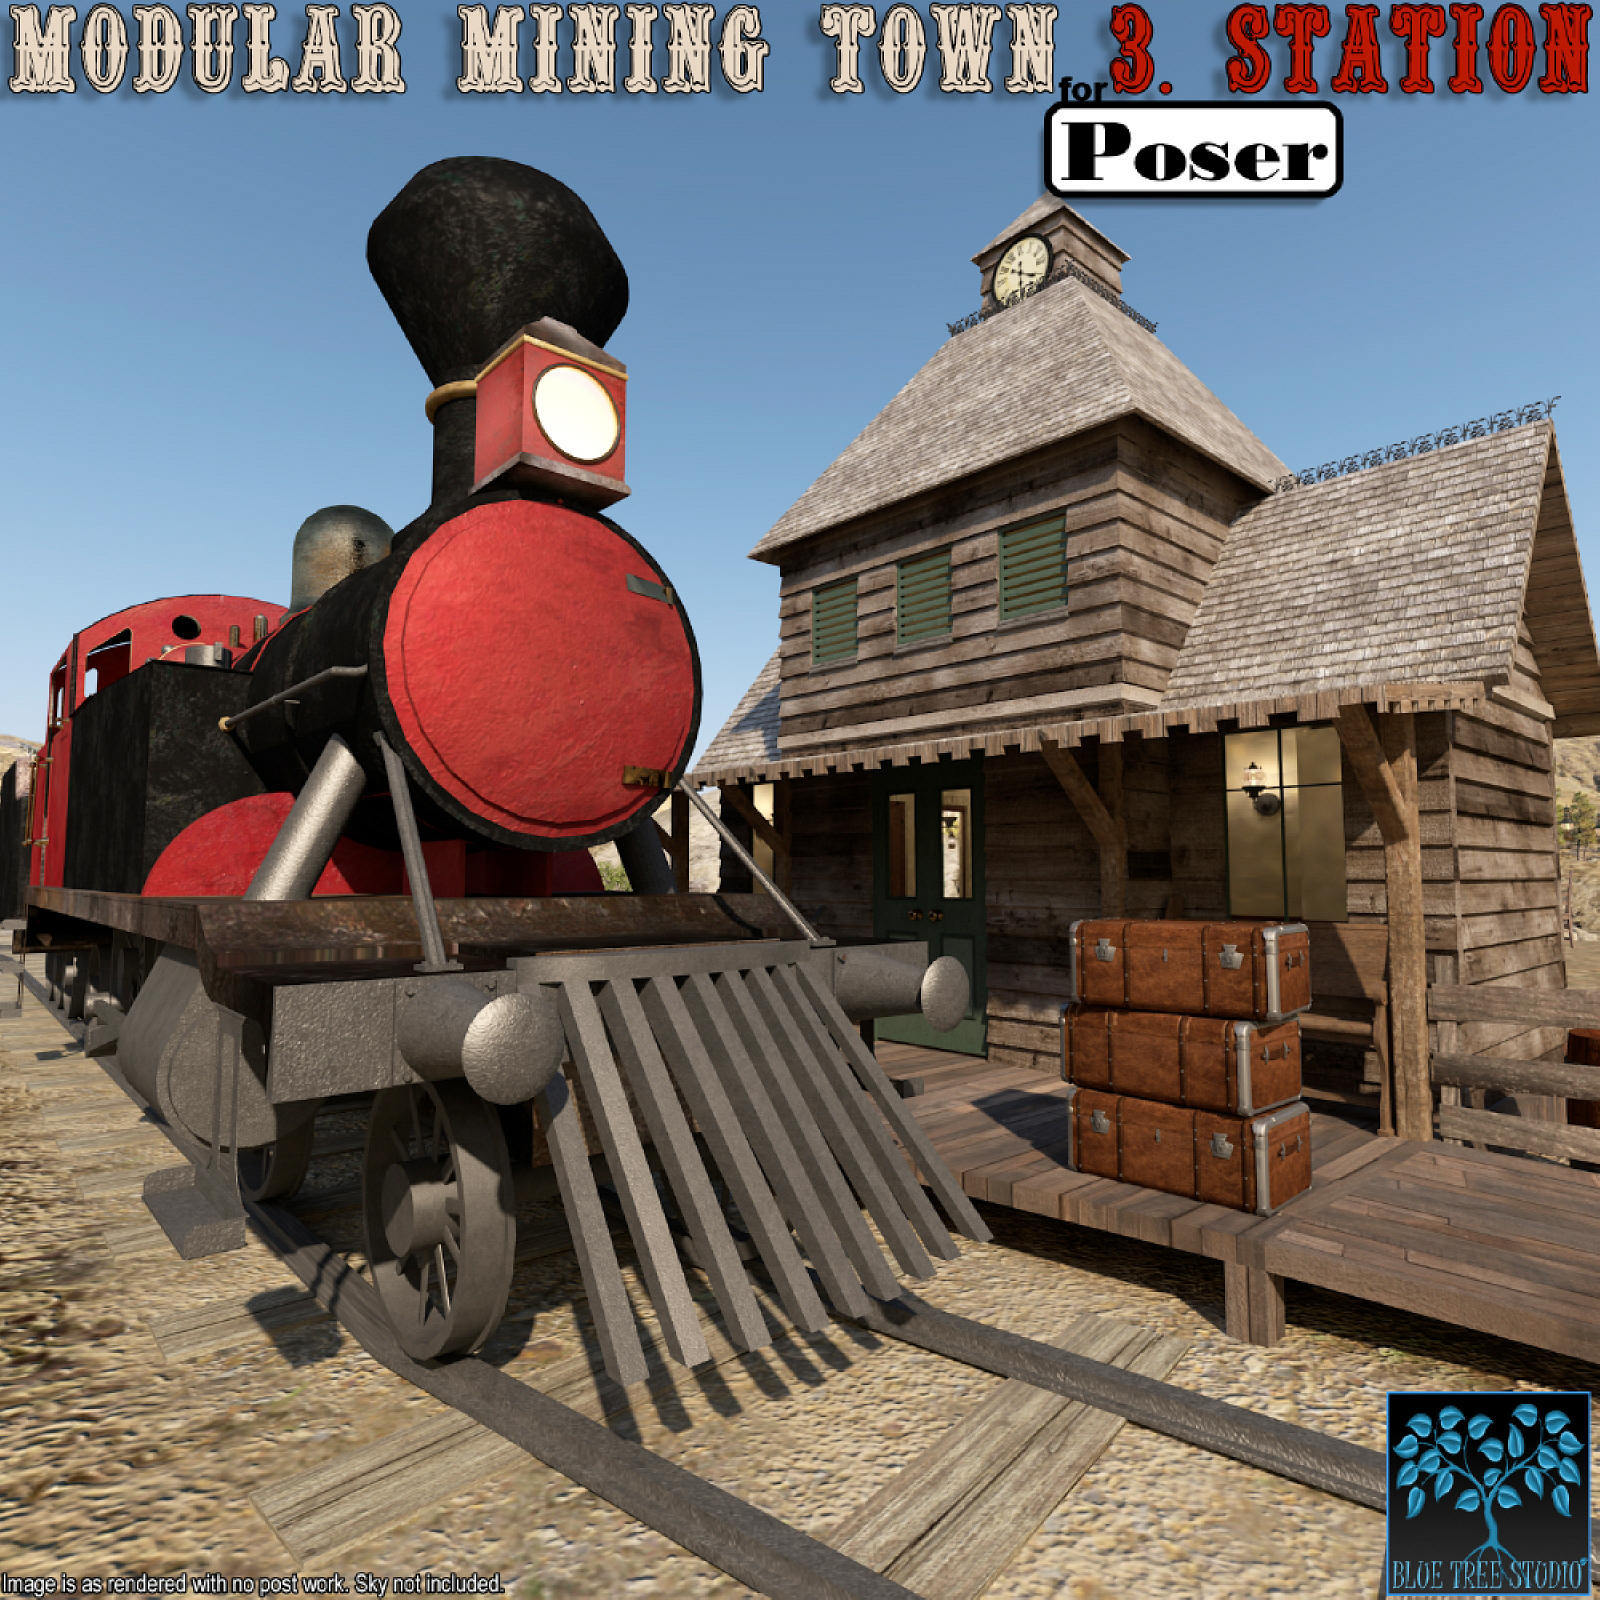 Modular Mining Town: 3. Station for Poser by BlueTreeStudio